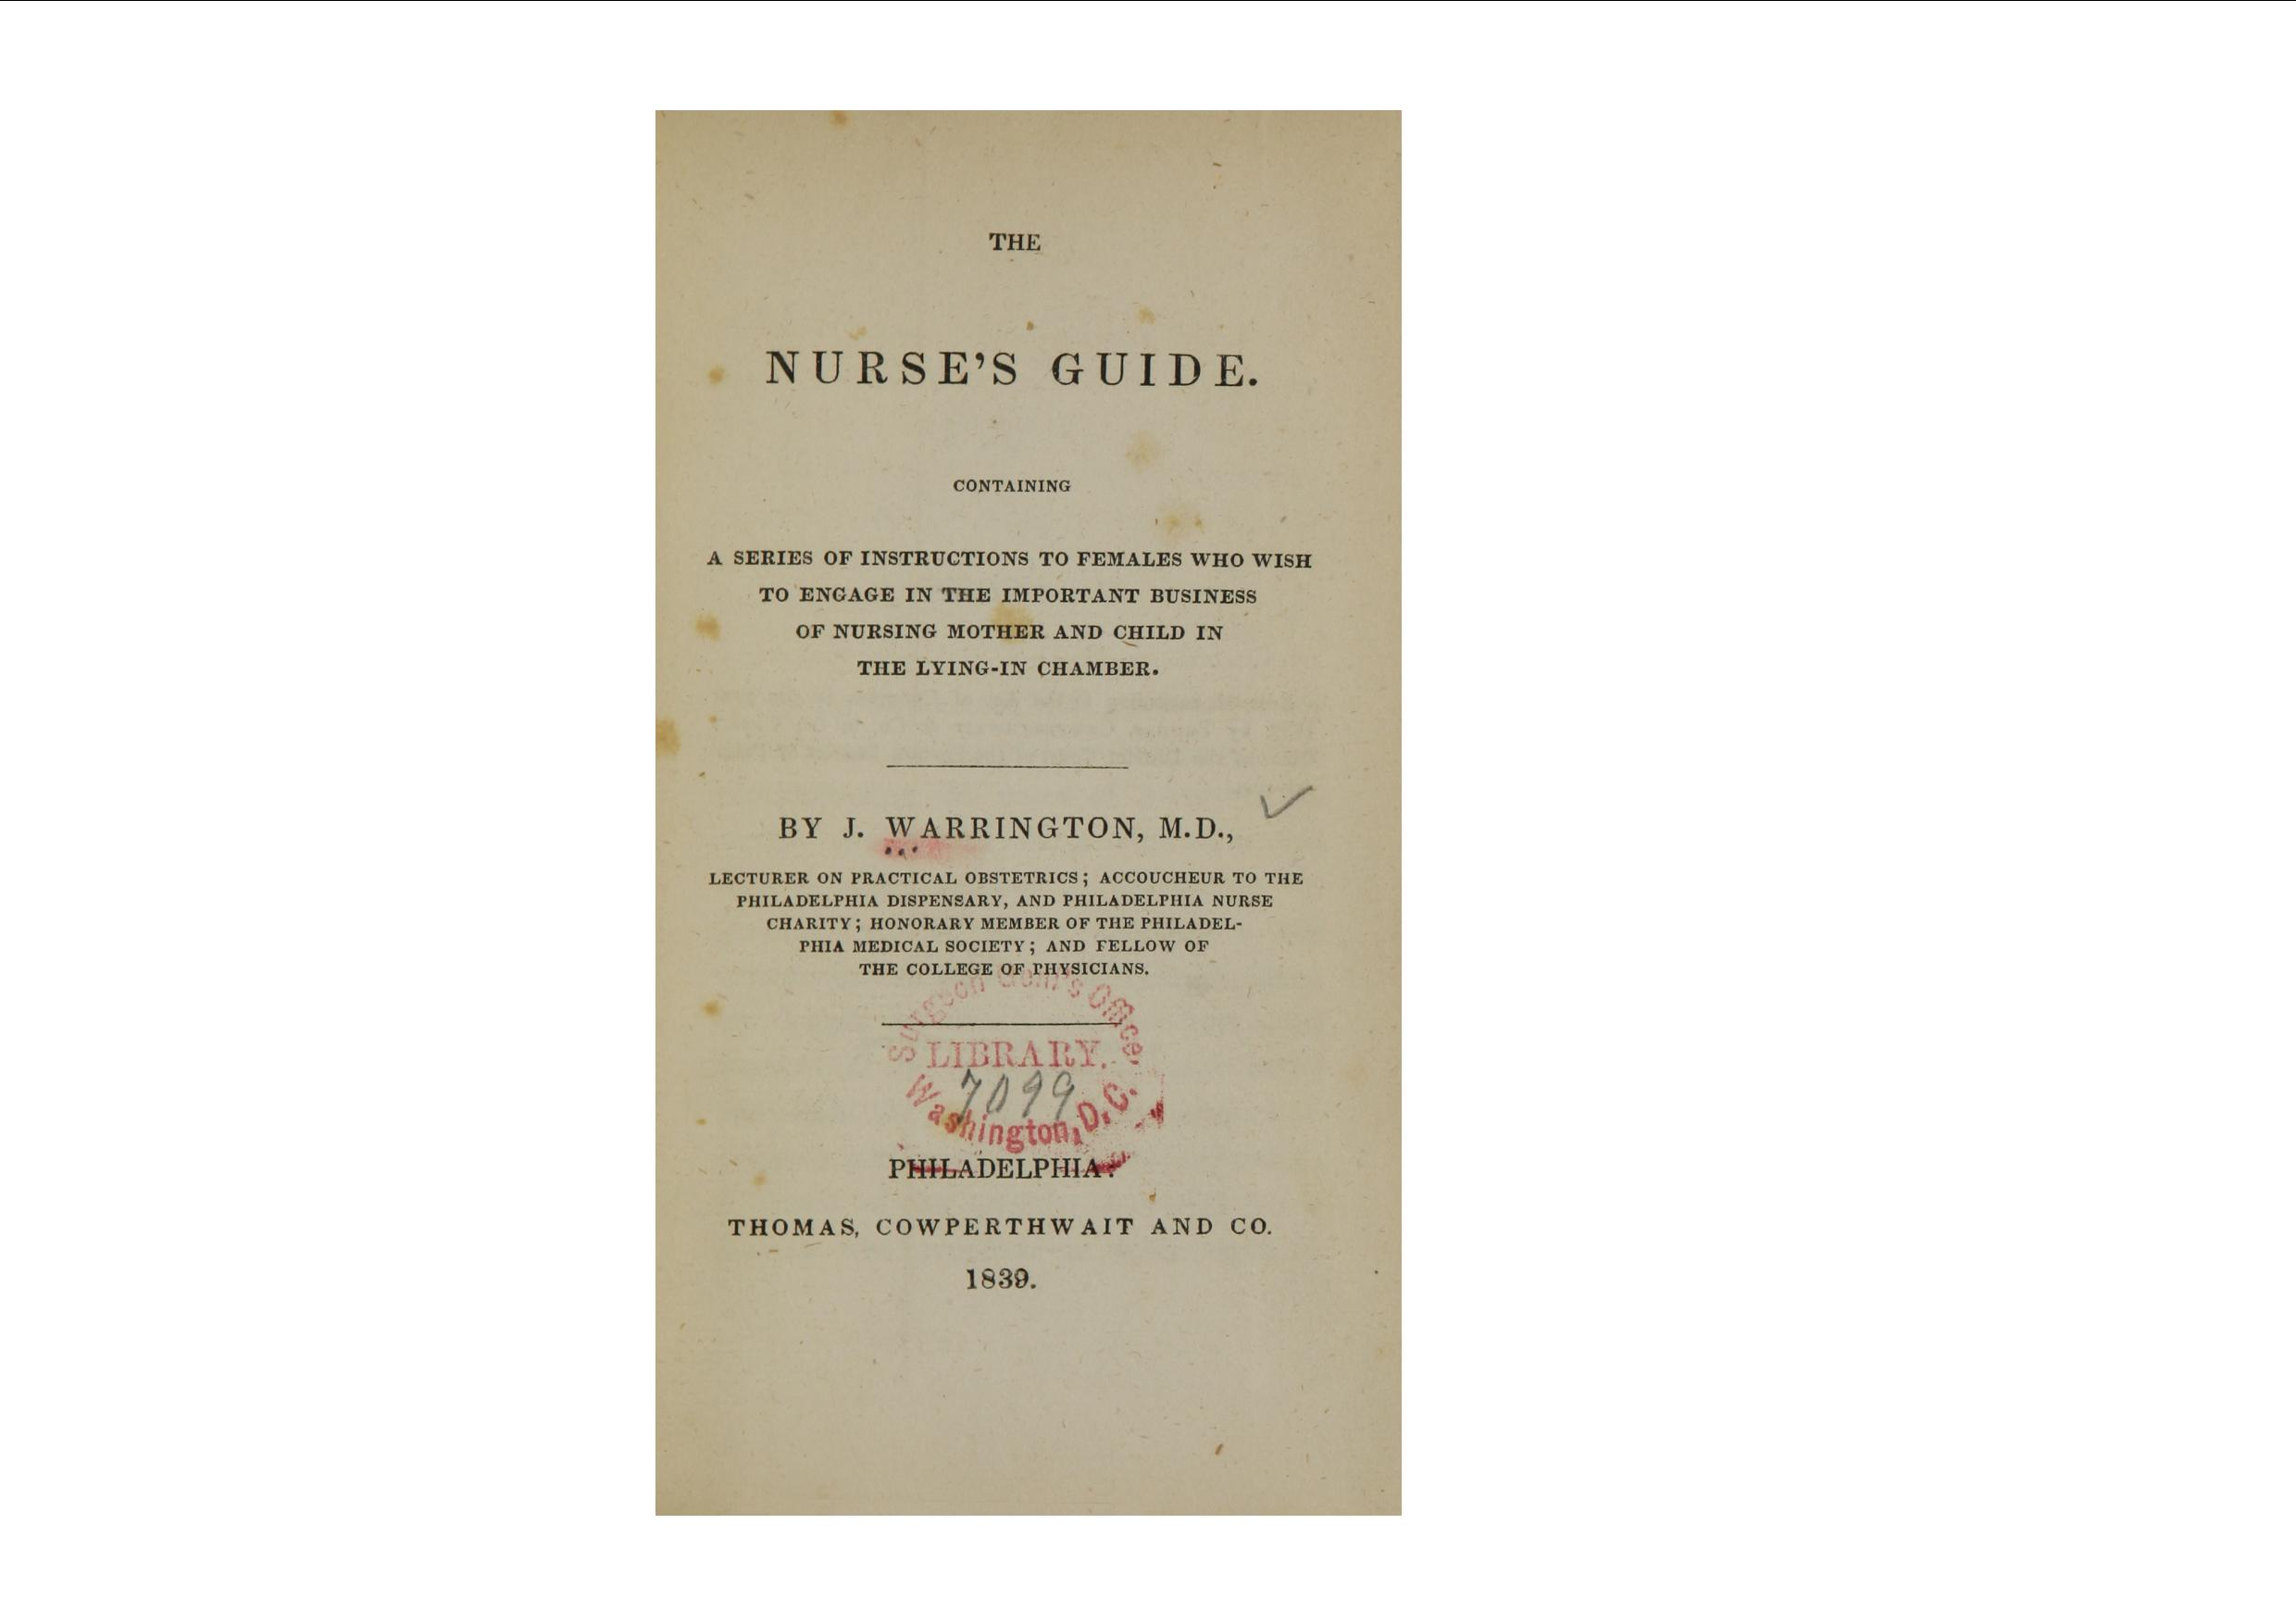 Nurse's Guide byDr. Joseph Warrington - SERIES OF INSTRUCTIONS TO FEMALES WHO WISHTO ENGAGE IN THE IMPORTANT BUSINESSOF NURSING MOTHER AND CHILD INTHE LYING-IN CHAMBER BY J. WARRINGTON, M.D.,\XLECTURER ON PRACTICAL OBSTETRICS ; ACCOUCHEUR TO THEPHILADELPHIA DISPENSARY, AND PHILADELPHIA NURSECHARITY; HONORARY MEMBER OF THE PHILADELPHIA MEDICAL SOCIETY ; AND FELLOW OF THE COLLEGE OF PHY,SICIANSPHttrADELPfflA